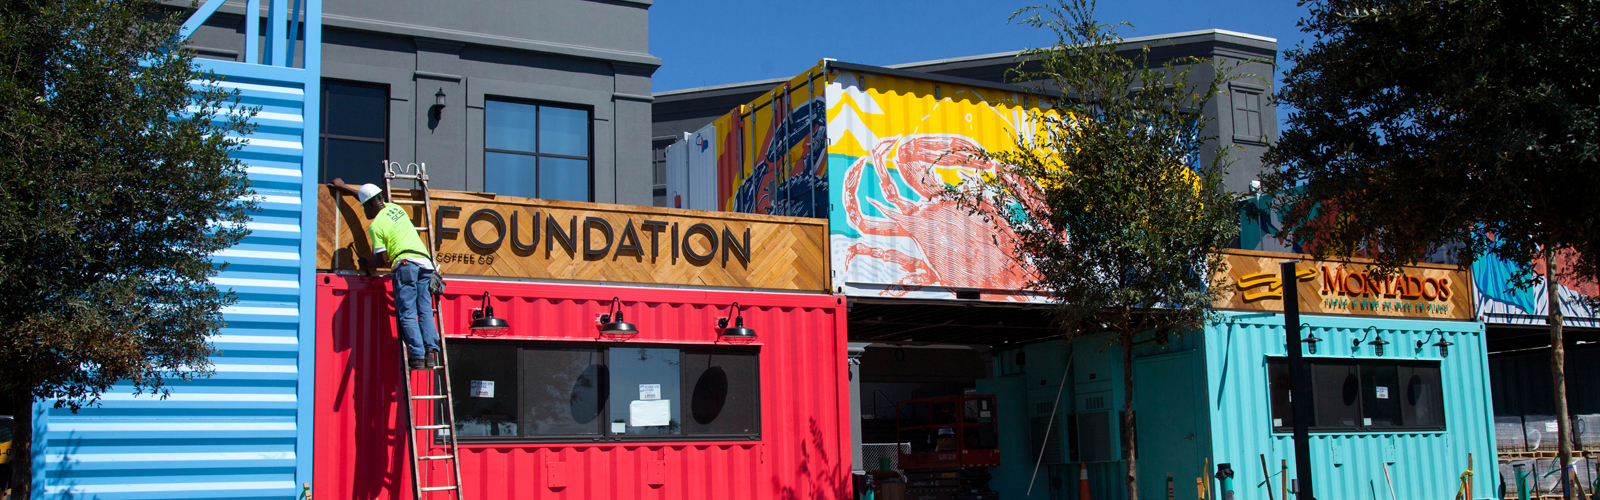 Restaurants inside eclectic shipping containers at Sparkman Wharf in the Channelside District.